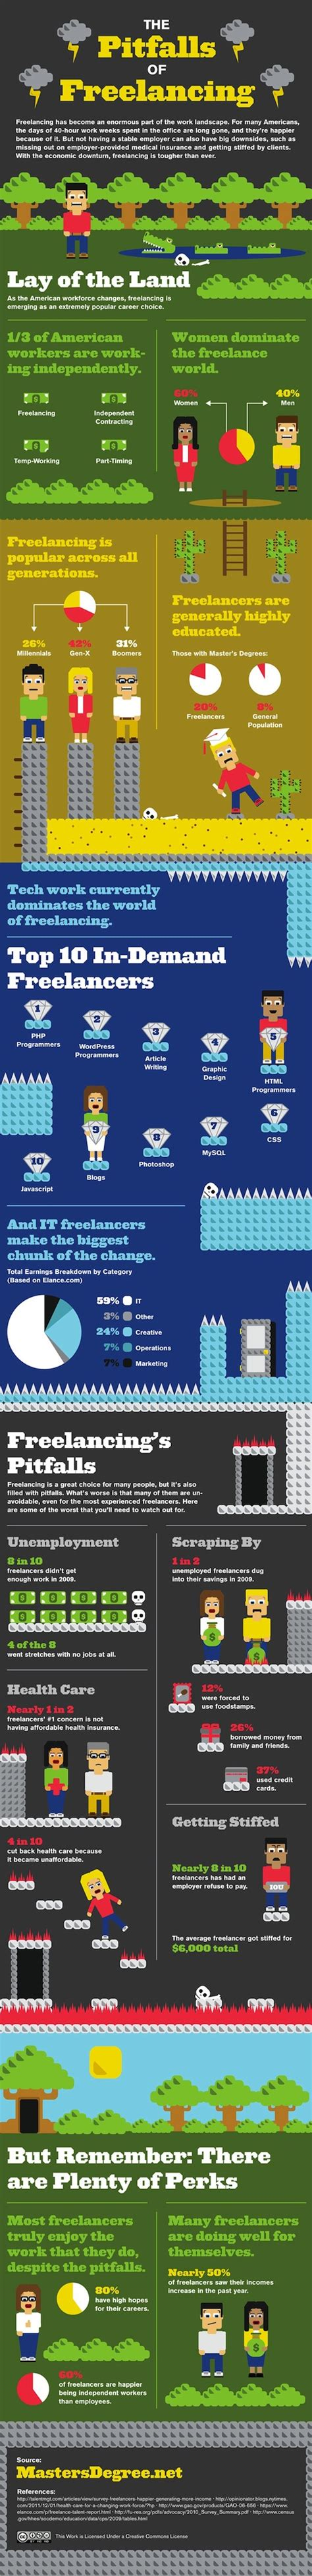 7 Downsides Of Being A Freelancer by Infographic The Pros And Cons Of Being A Freelancer